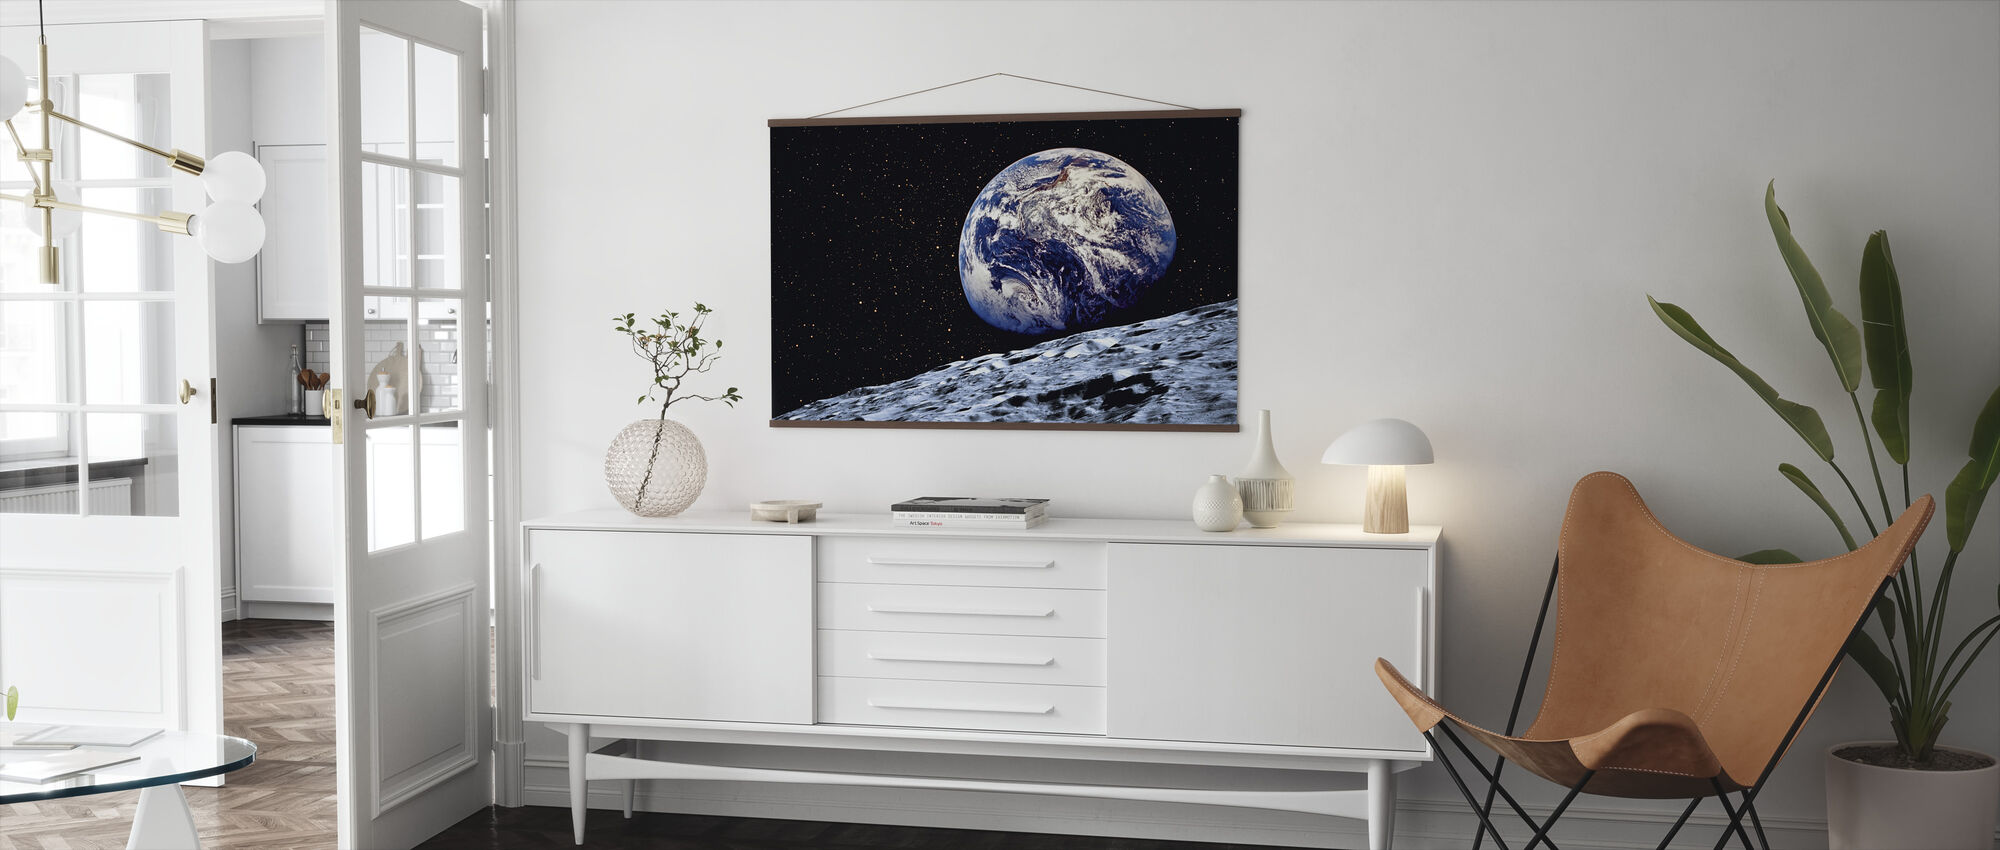 Earth from the Surface of the Moon - Poster - Living Room